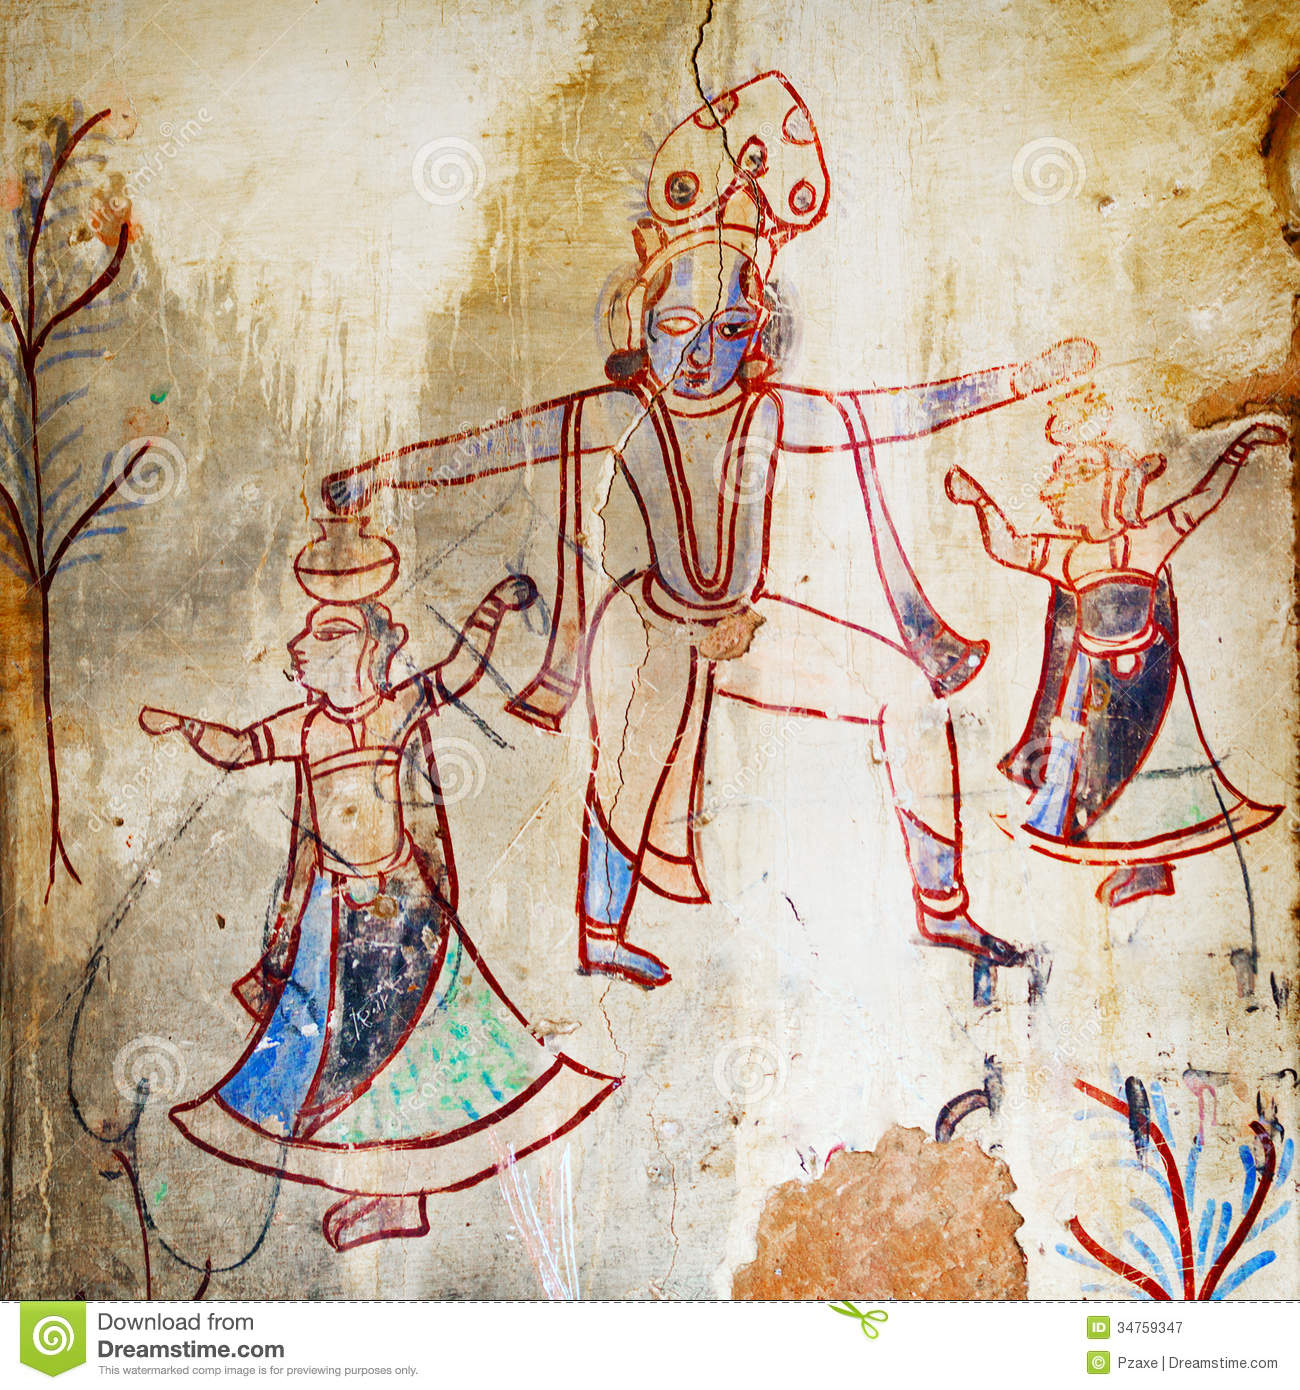 Ancient Paintings In An Abandoned Provincial Temple. India